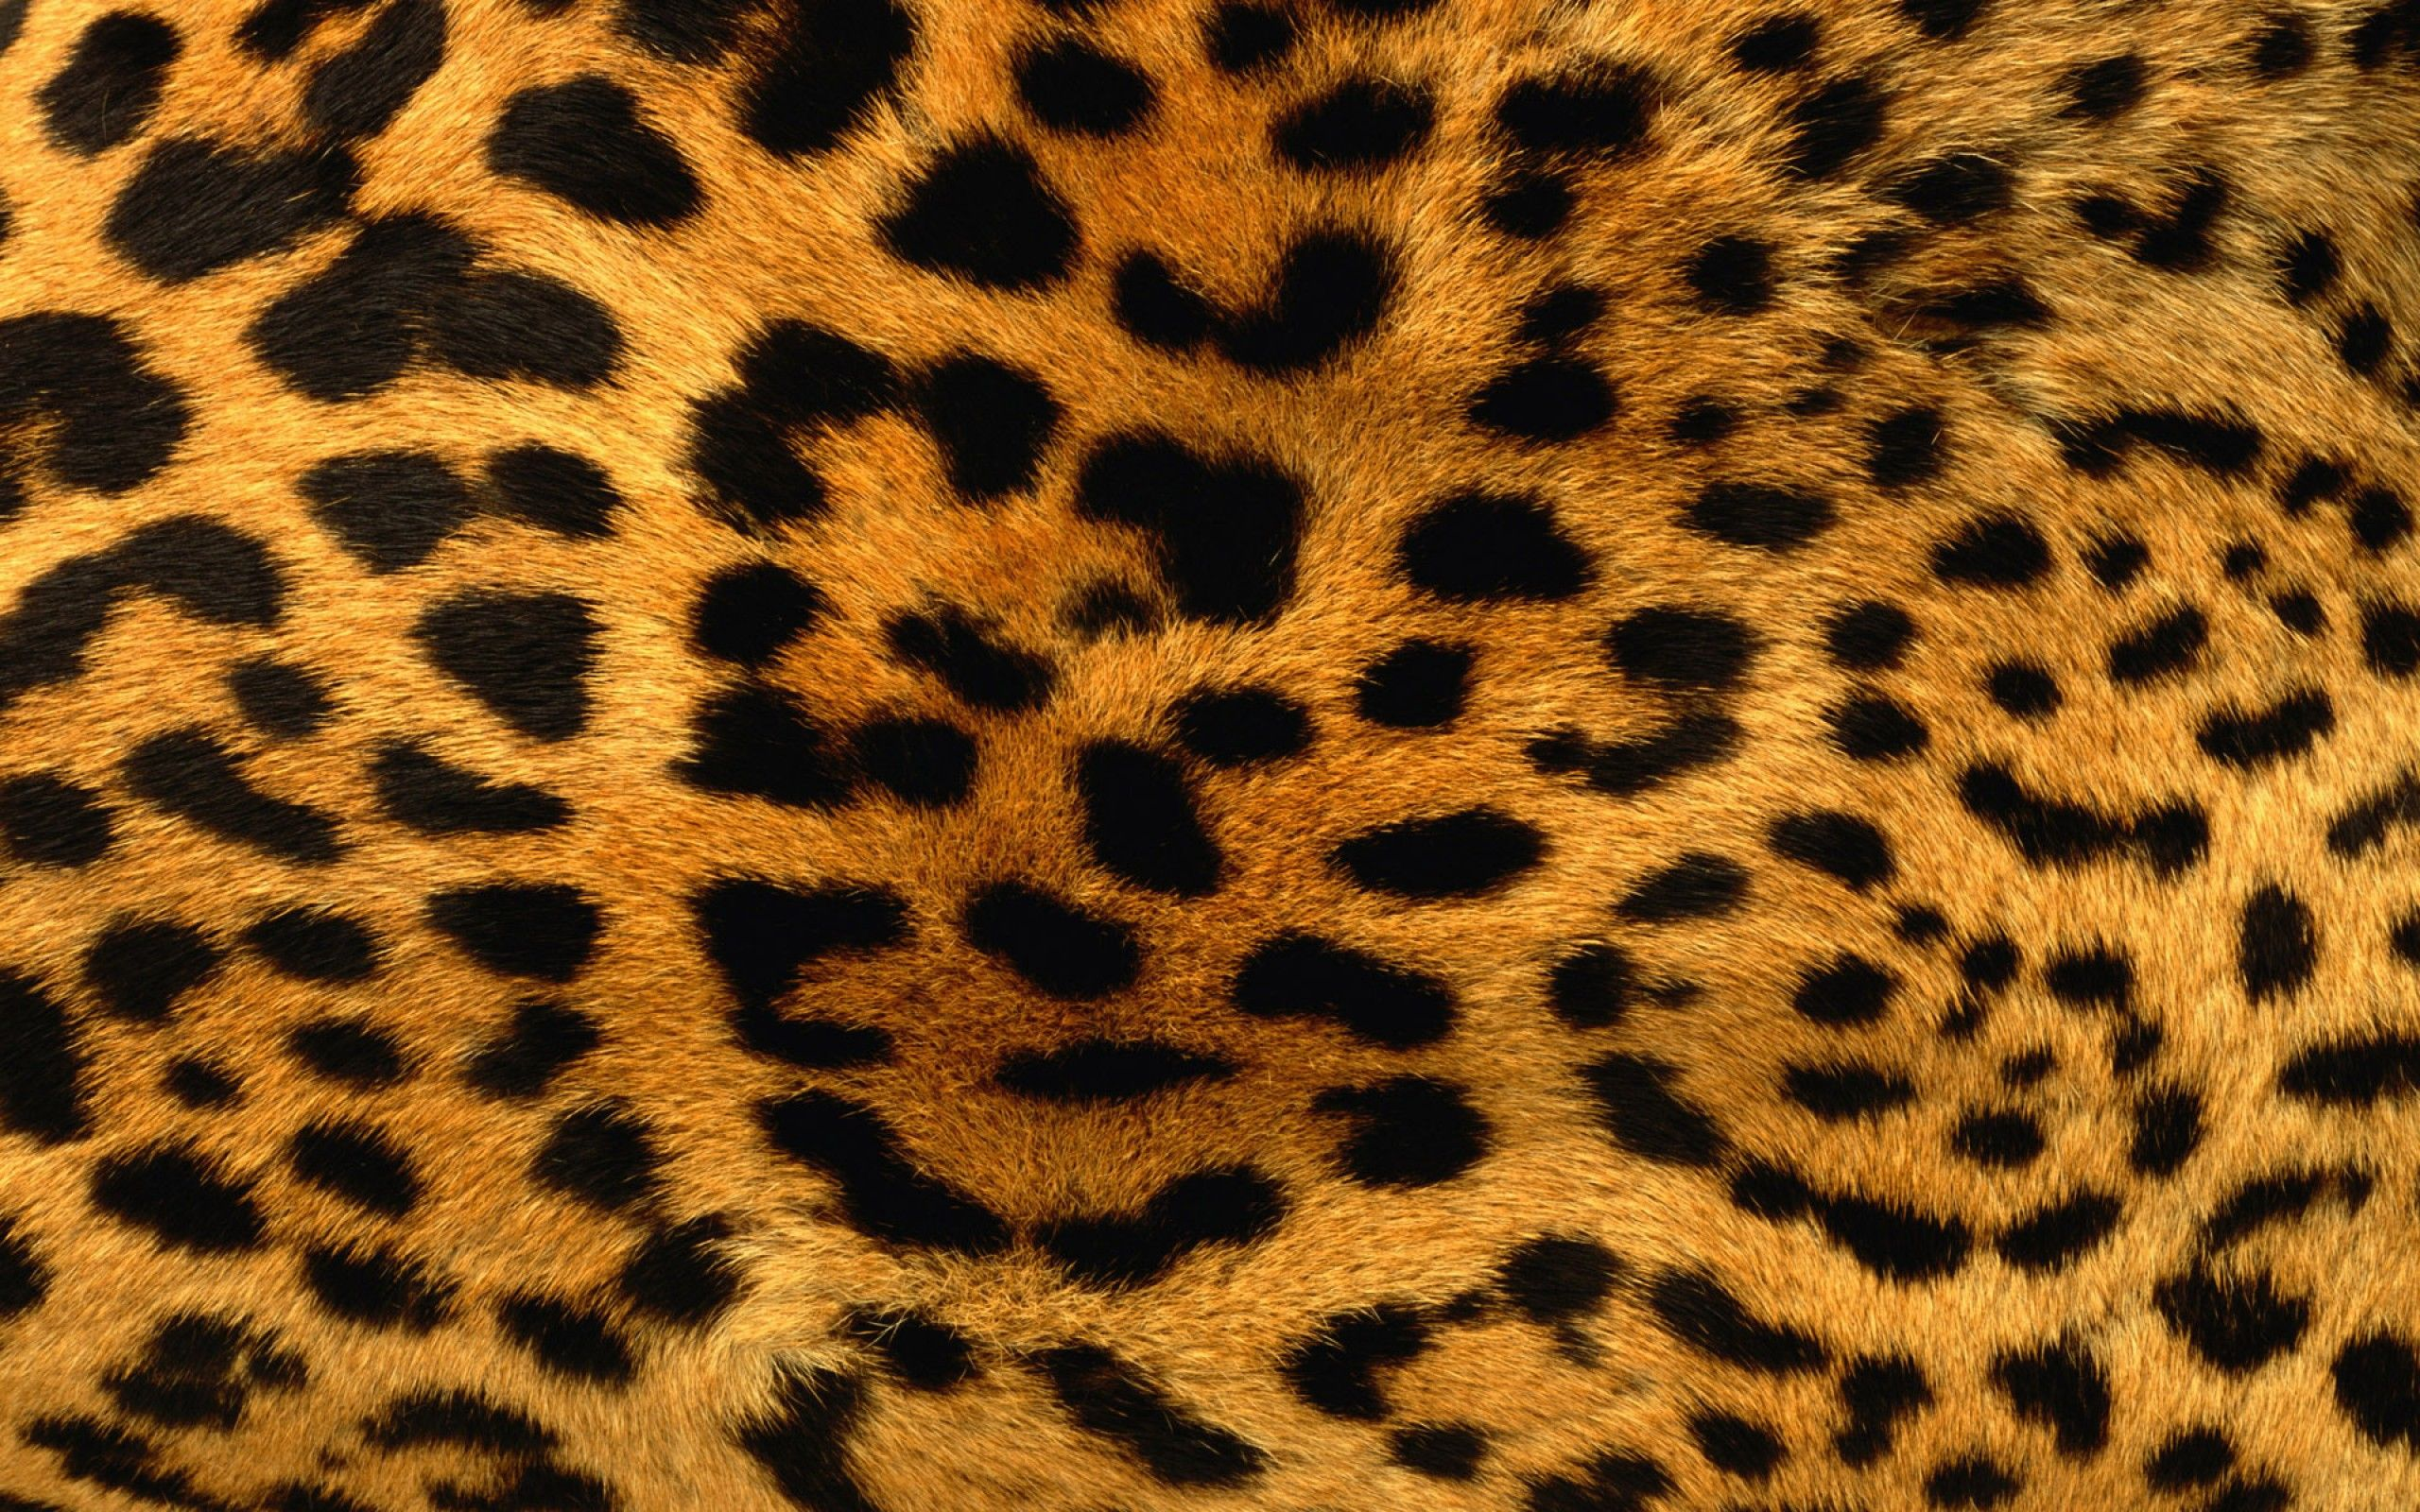 Real Giraffe Print Animal Wallpapers 7448 Ilikewalls Com Leopard Print Wallpaper Animal Print Wallpaper Leopard Print Fashion